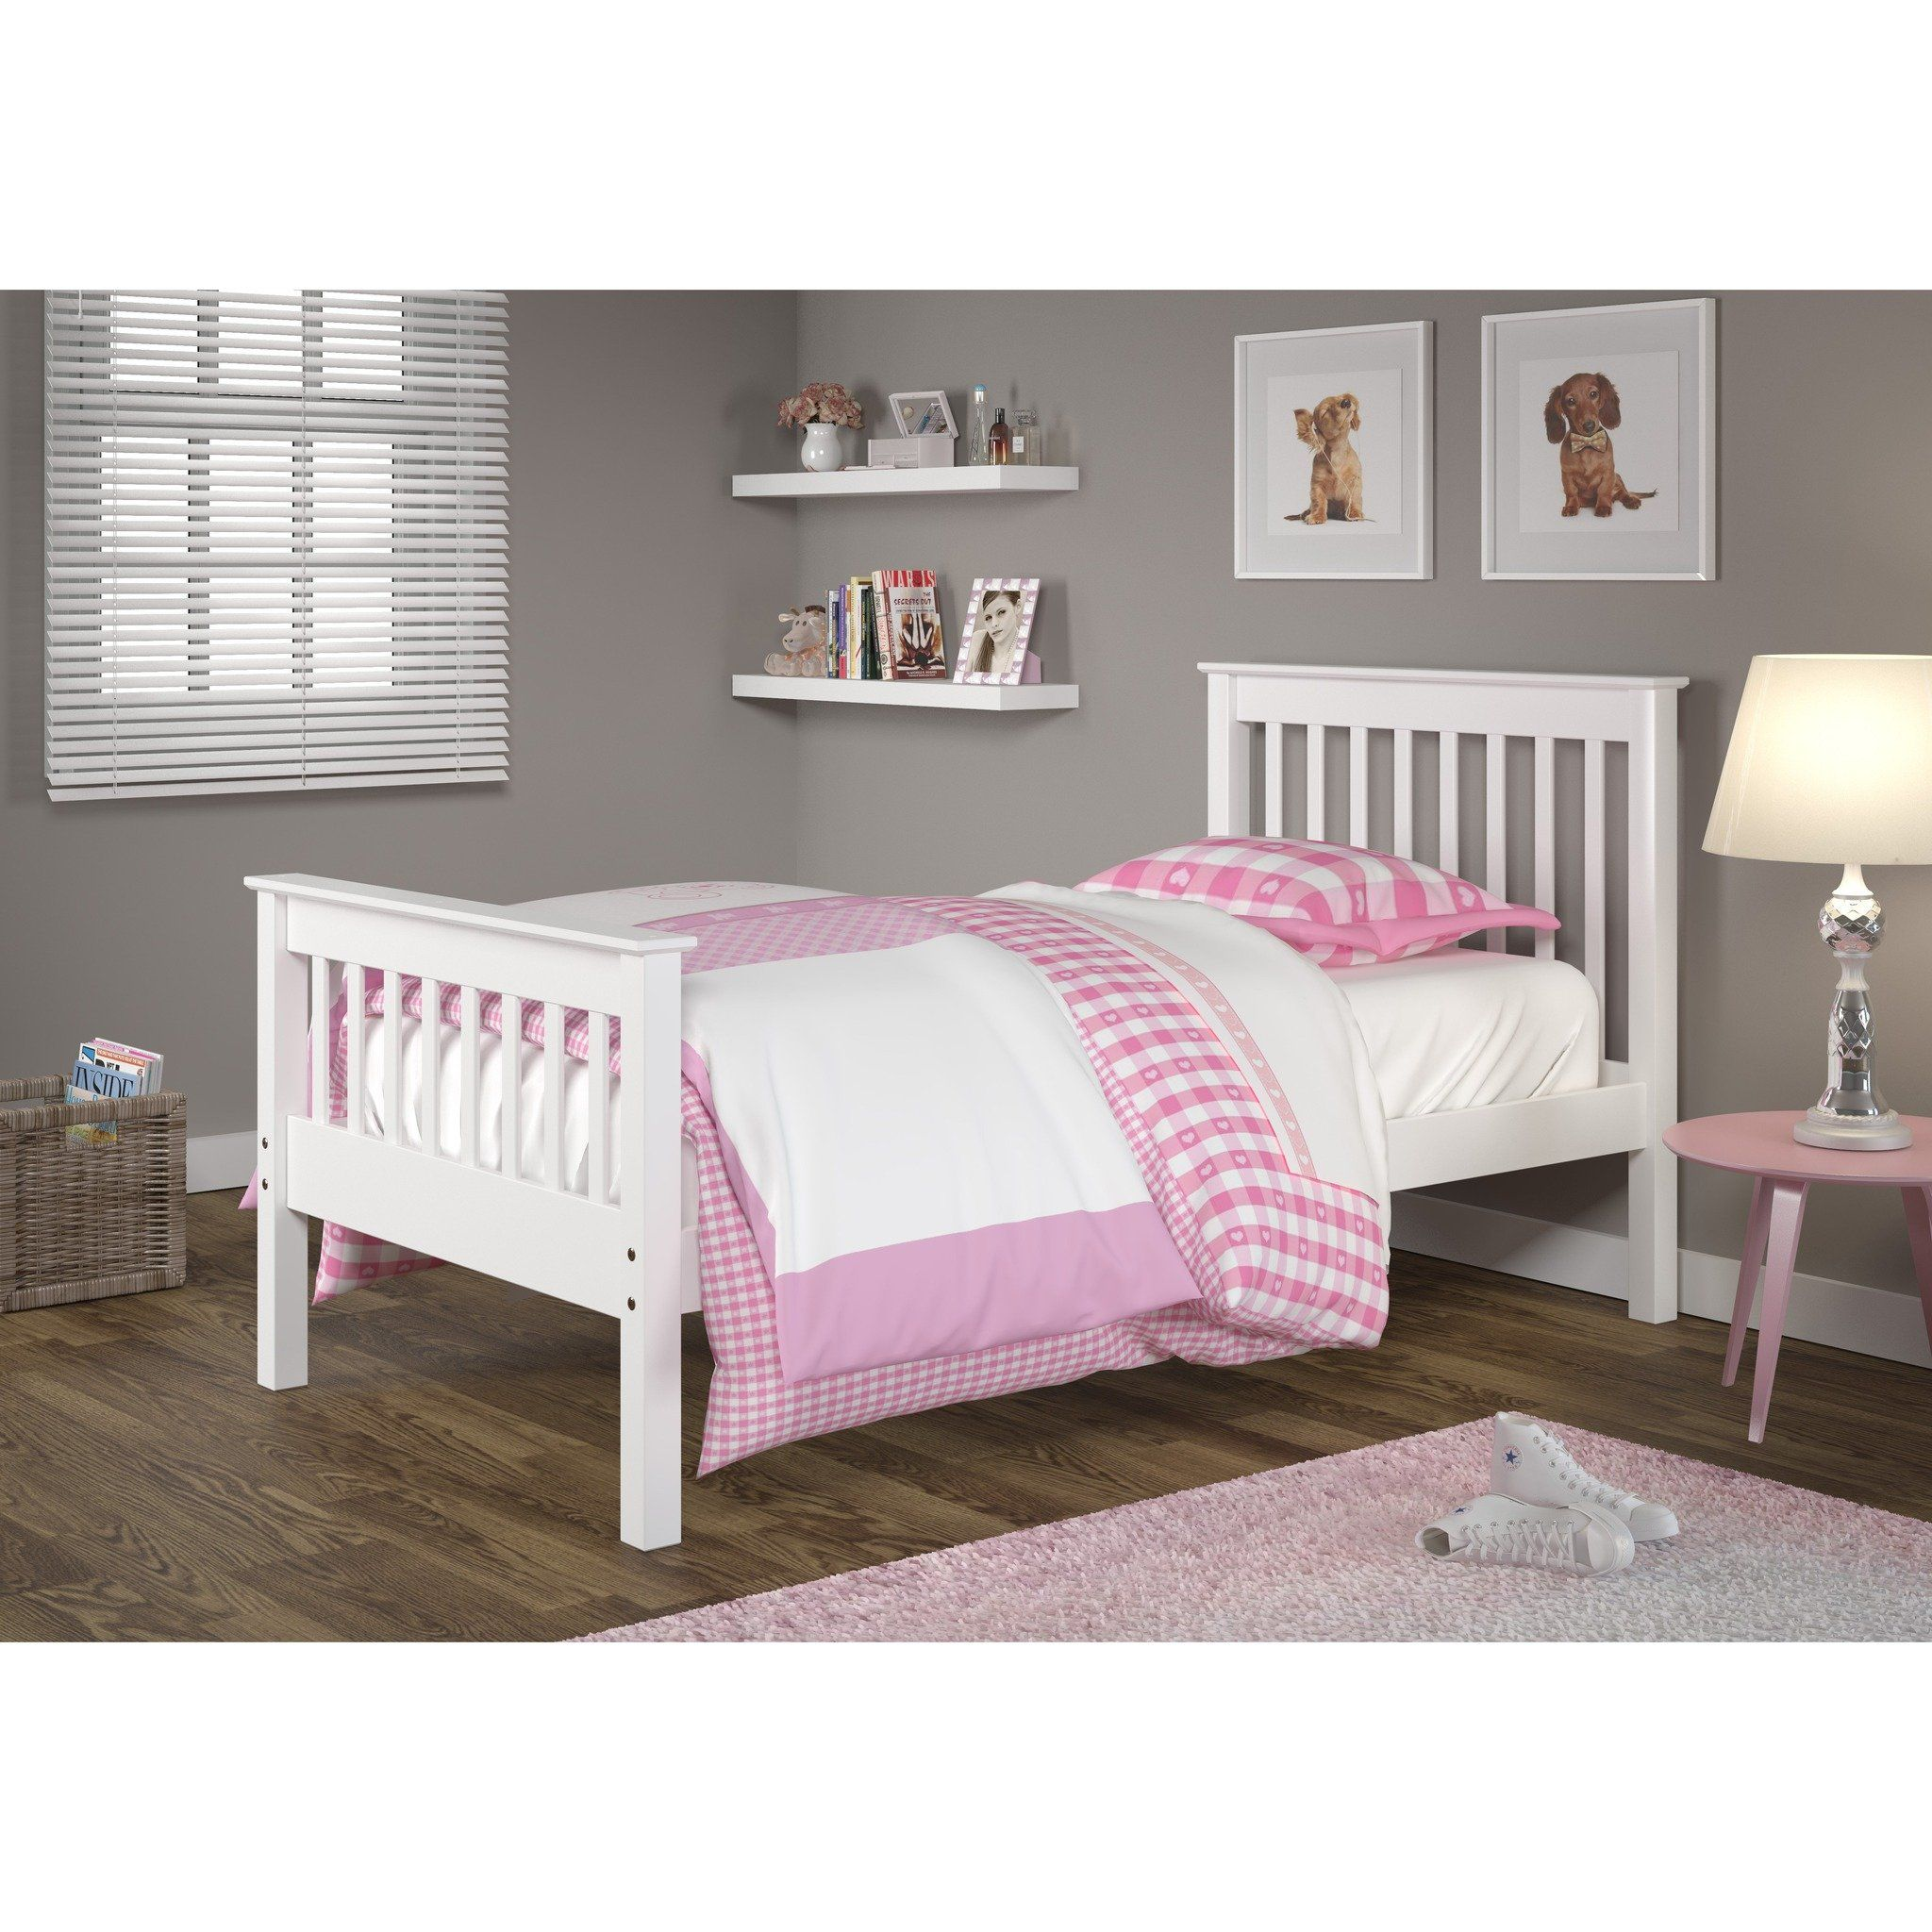 Donco Kids Mission White Pine Wood Twin Panel Bed Kid